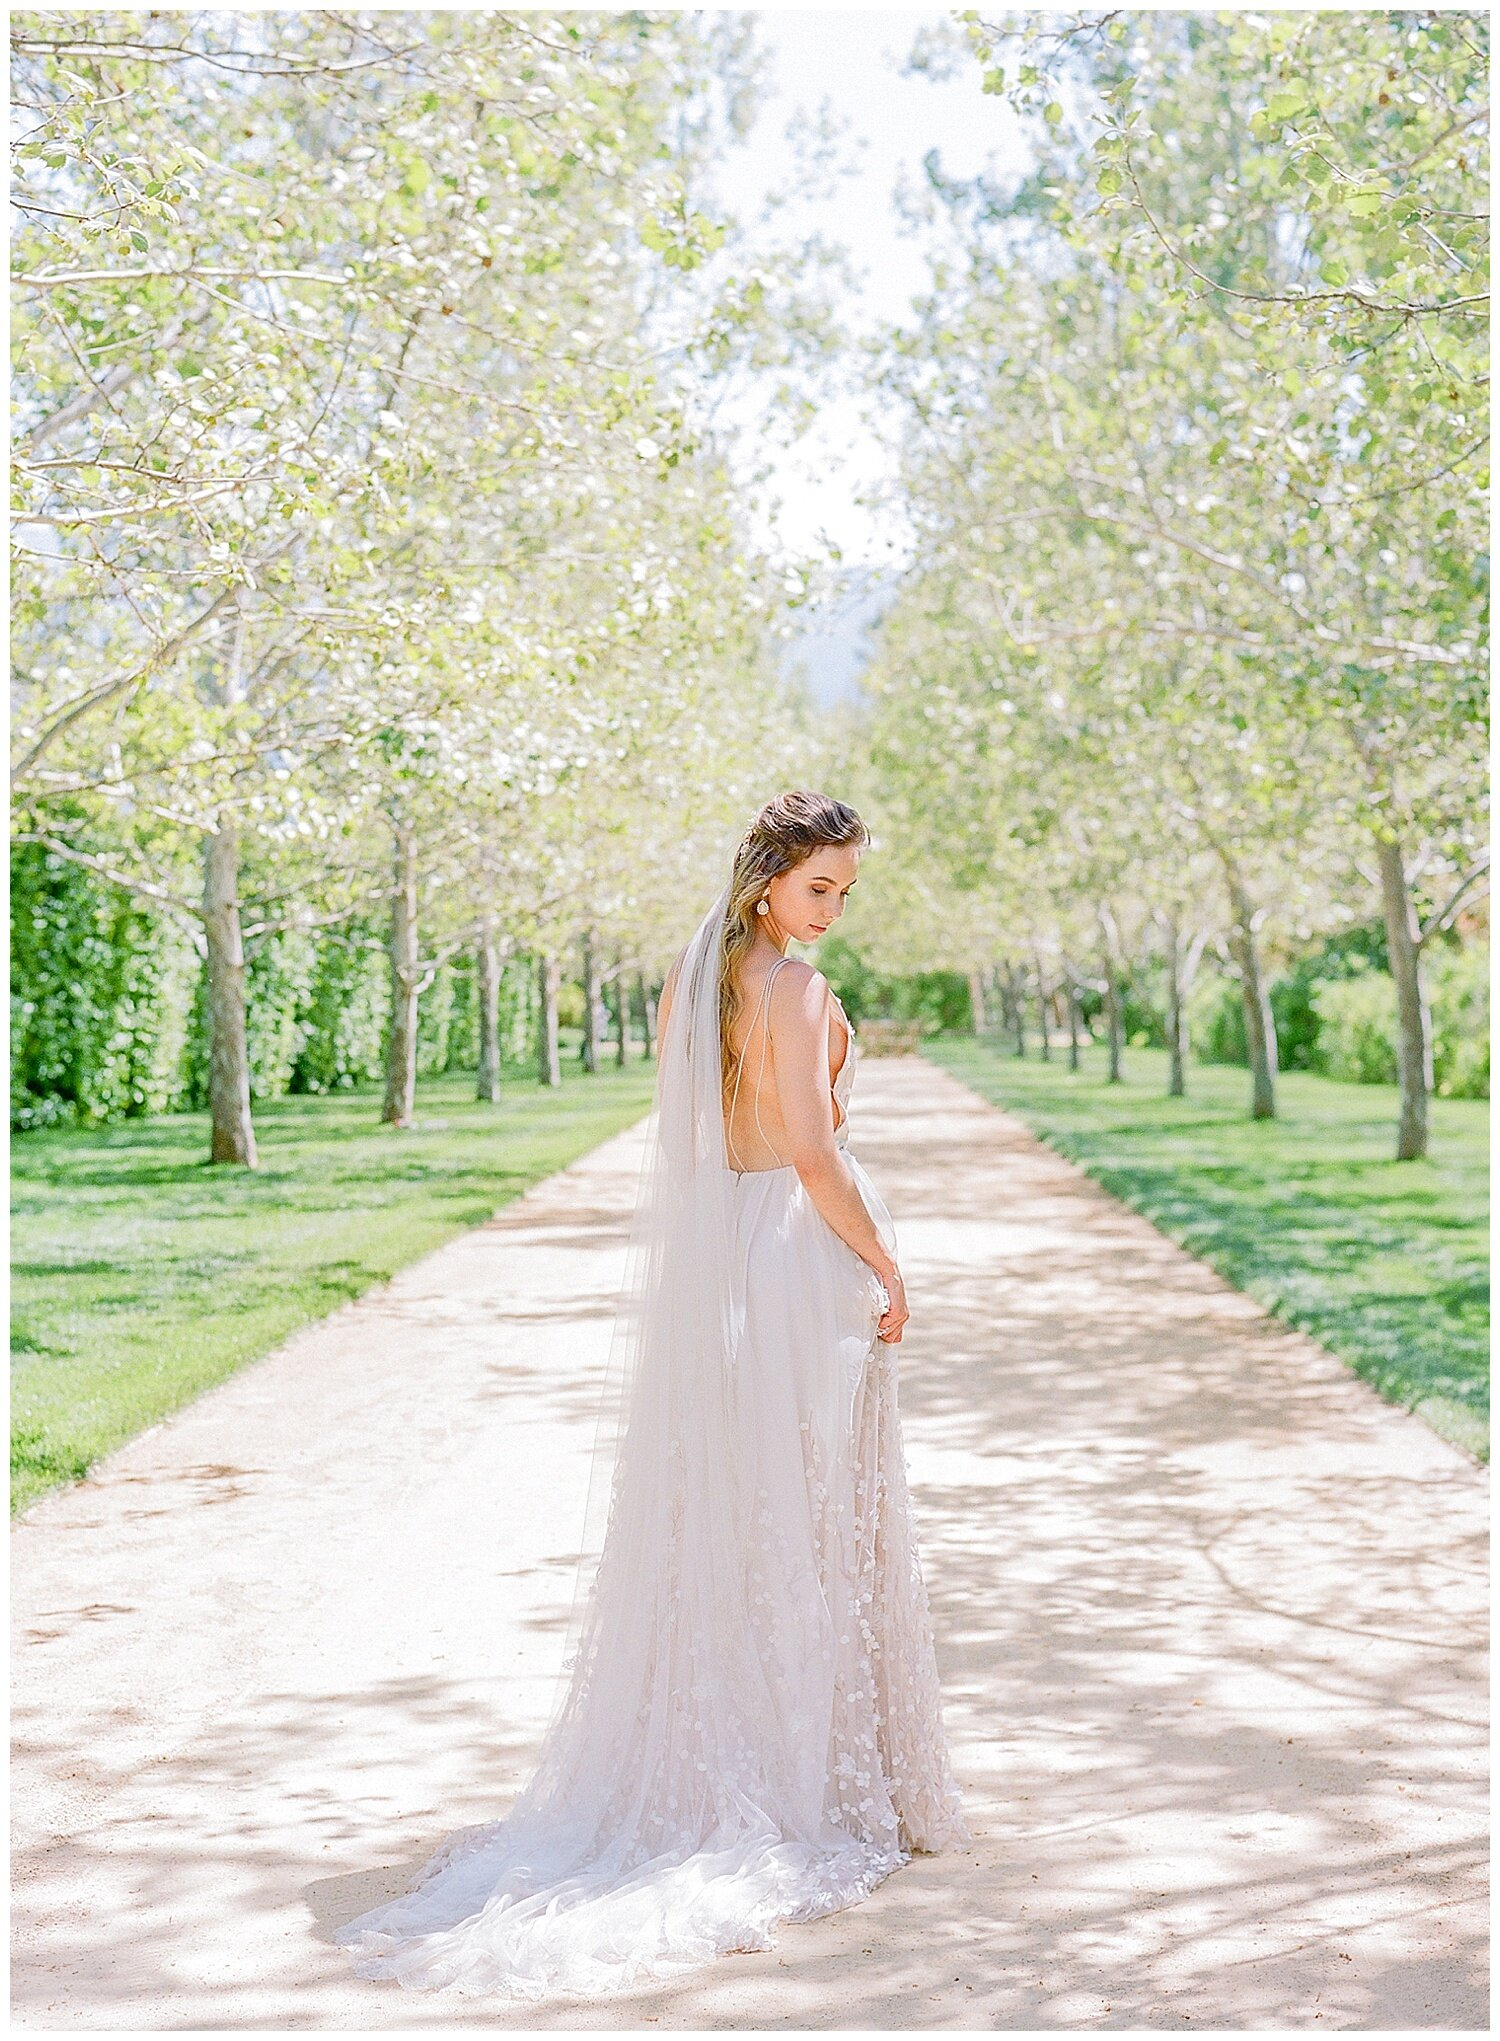 Janine_Licare_Photography_San_Francisco_Kestrel_Park_Santa_Ynez_Sunstone_Villa_Winer_Wedding_Photographer_Meadowood_Napa_Valley_Sonoma_0058.jpg